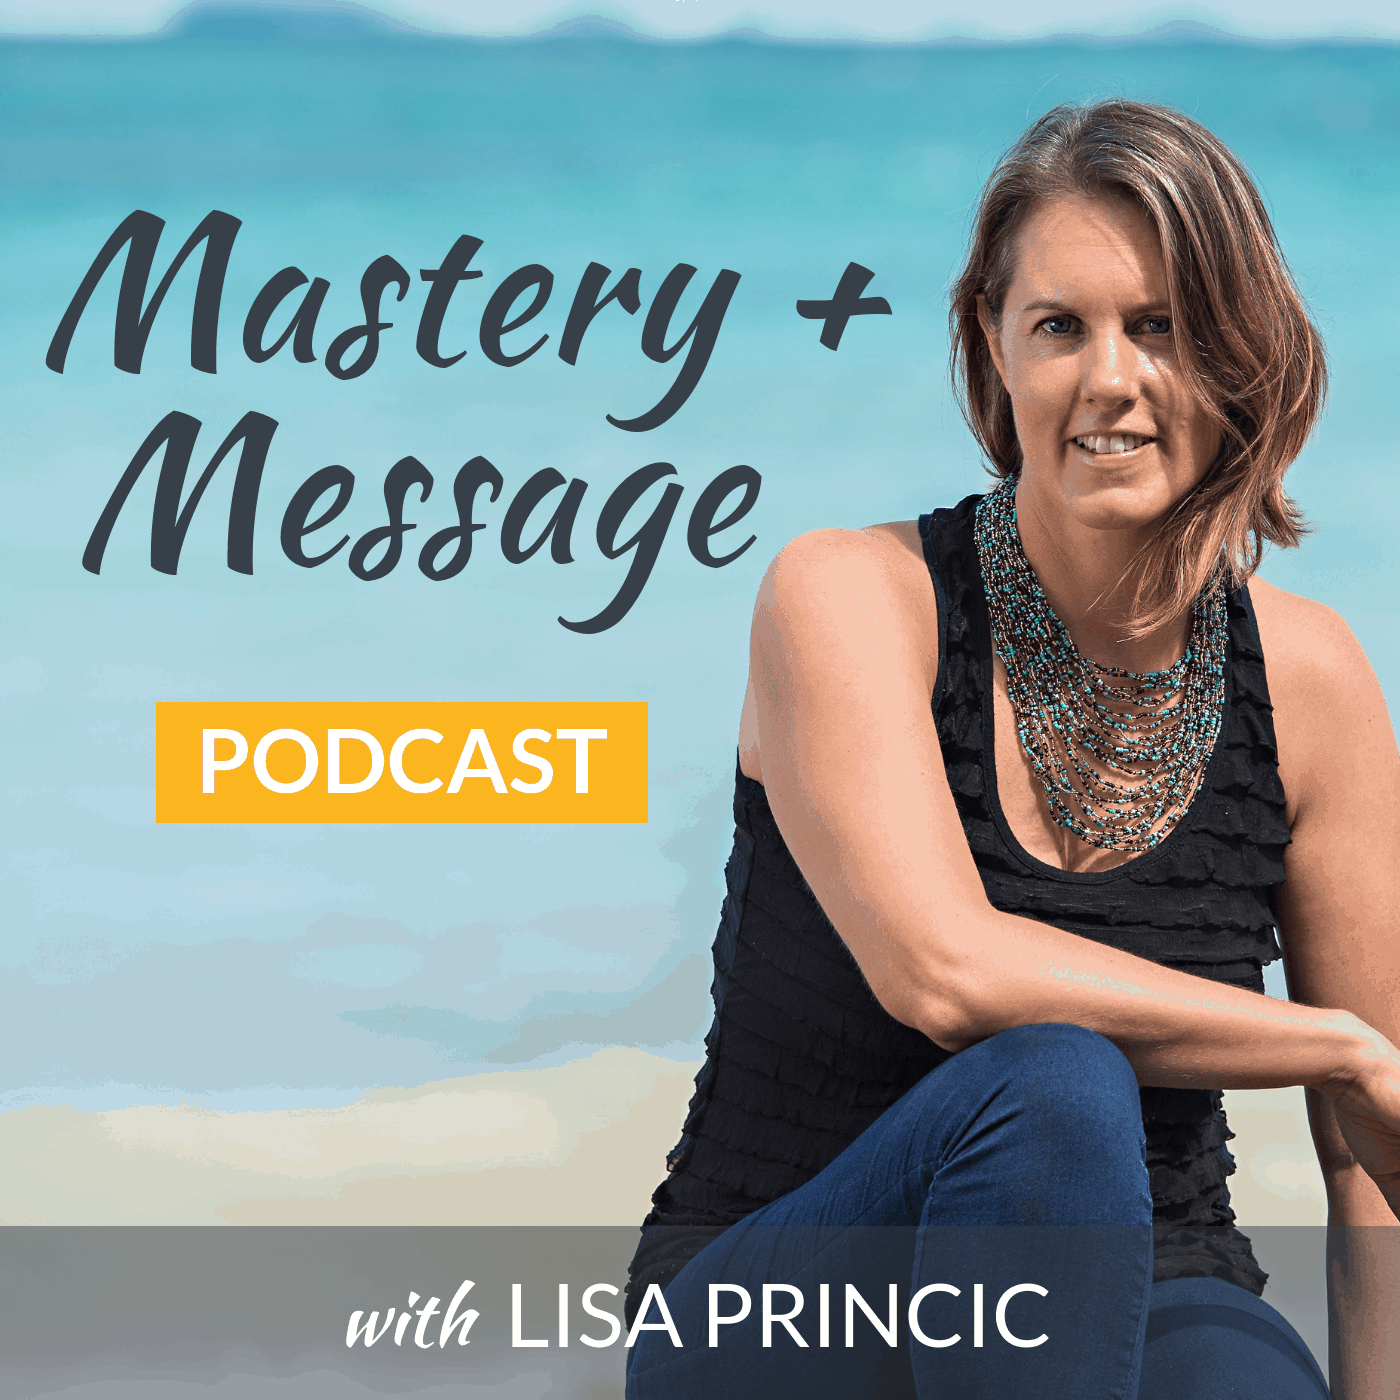 Mastery & message podcast cover art (1)